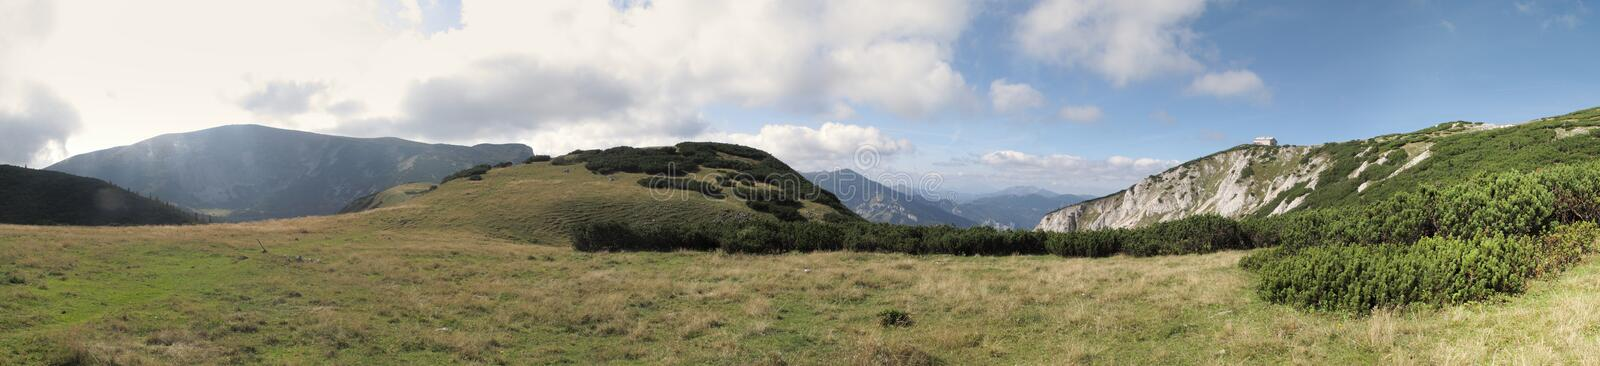 North look to Heukuppe and Habsburg mountain hut royalty free stock images